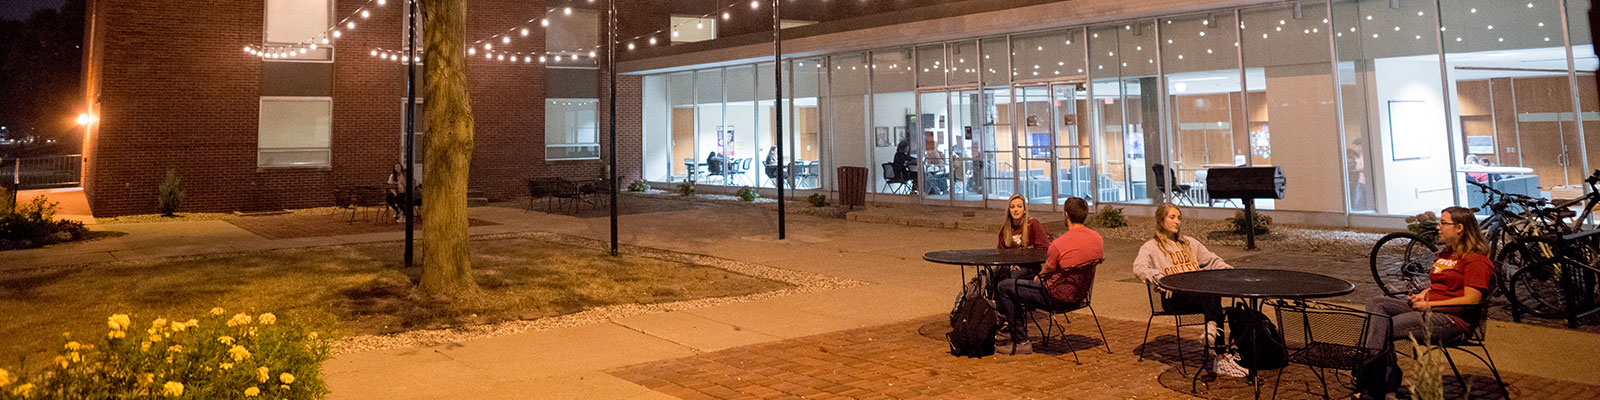 Students conversing outside at night